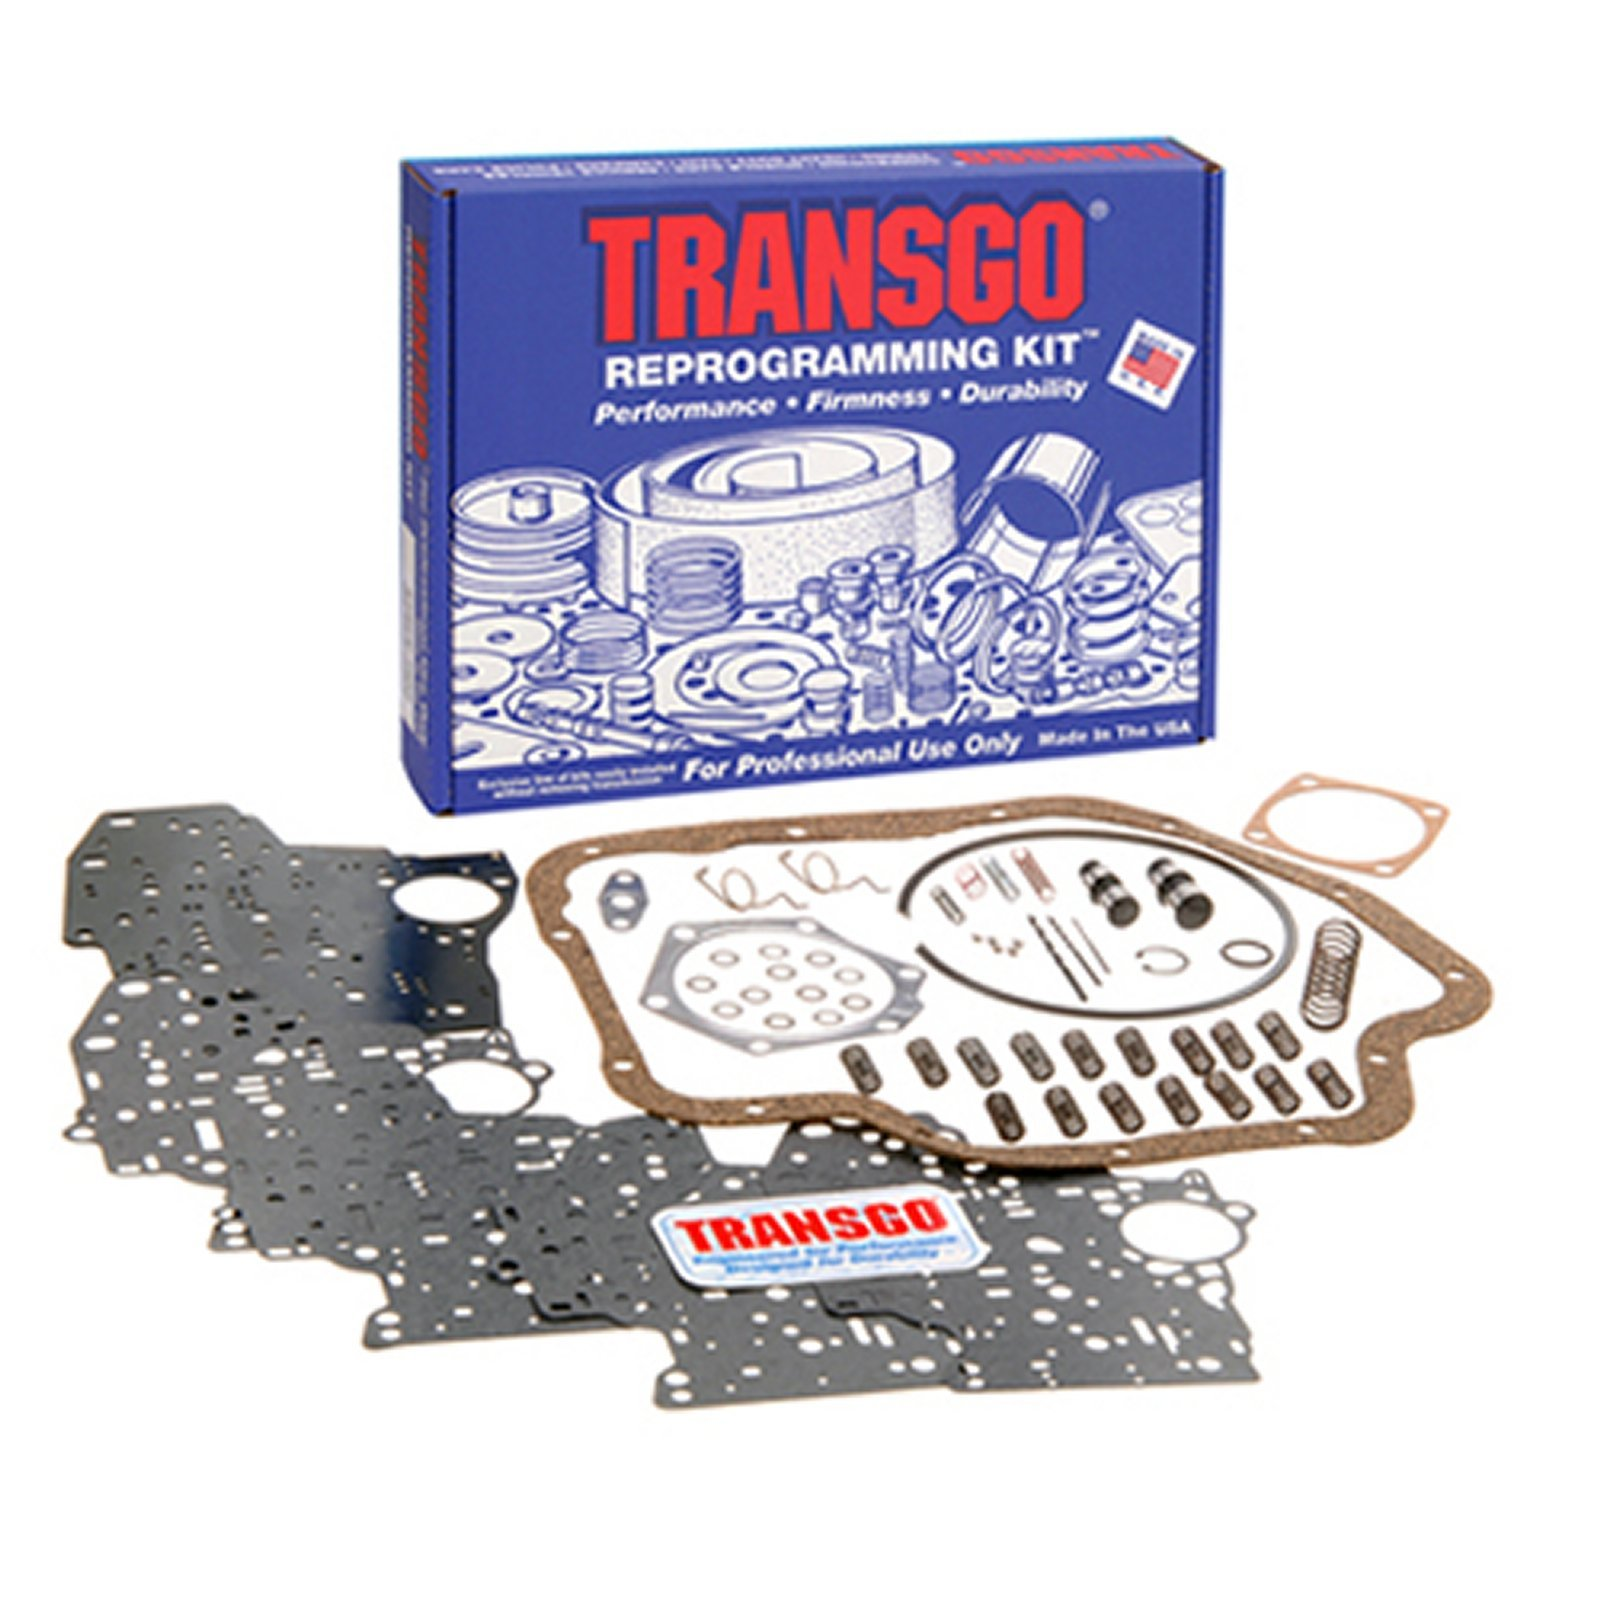 THM 400 TRANSGO Shift Kit Valve Body Rebuild Kit 65-up